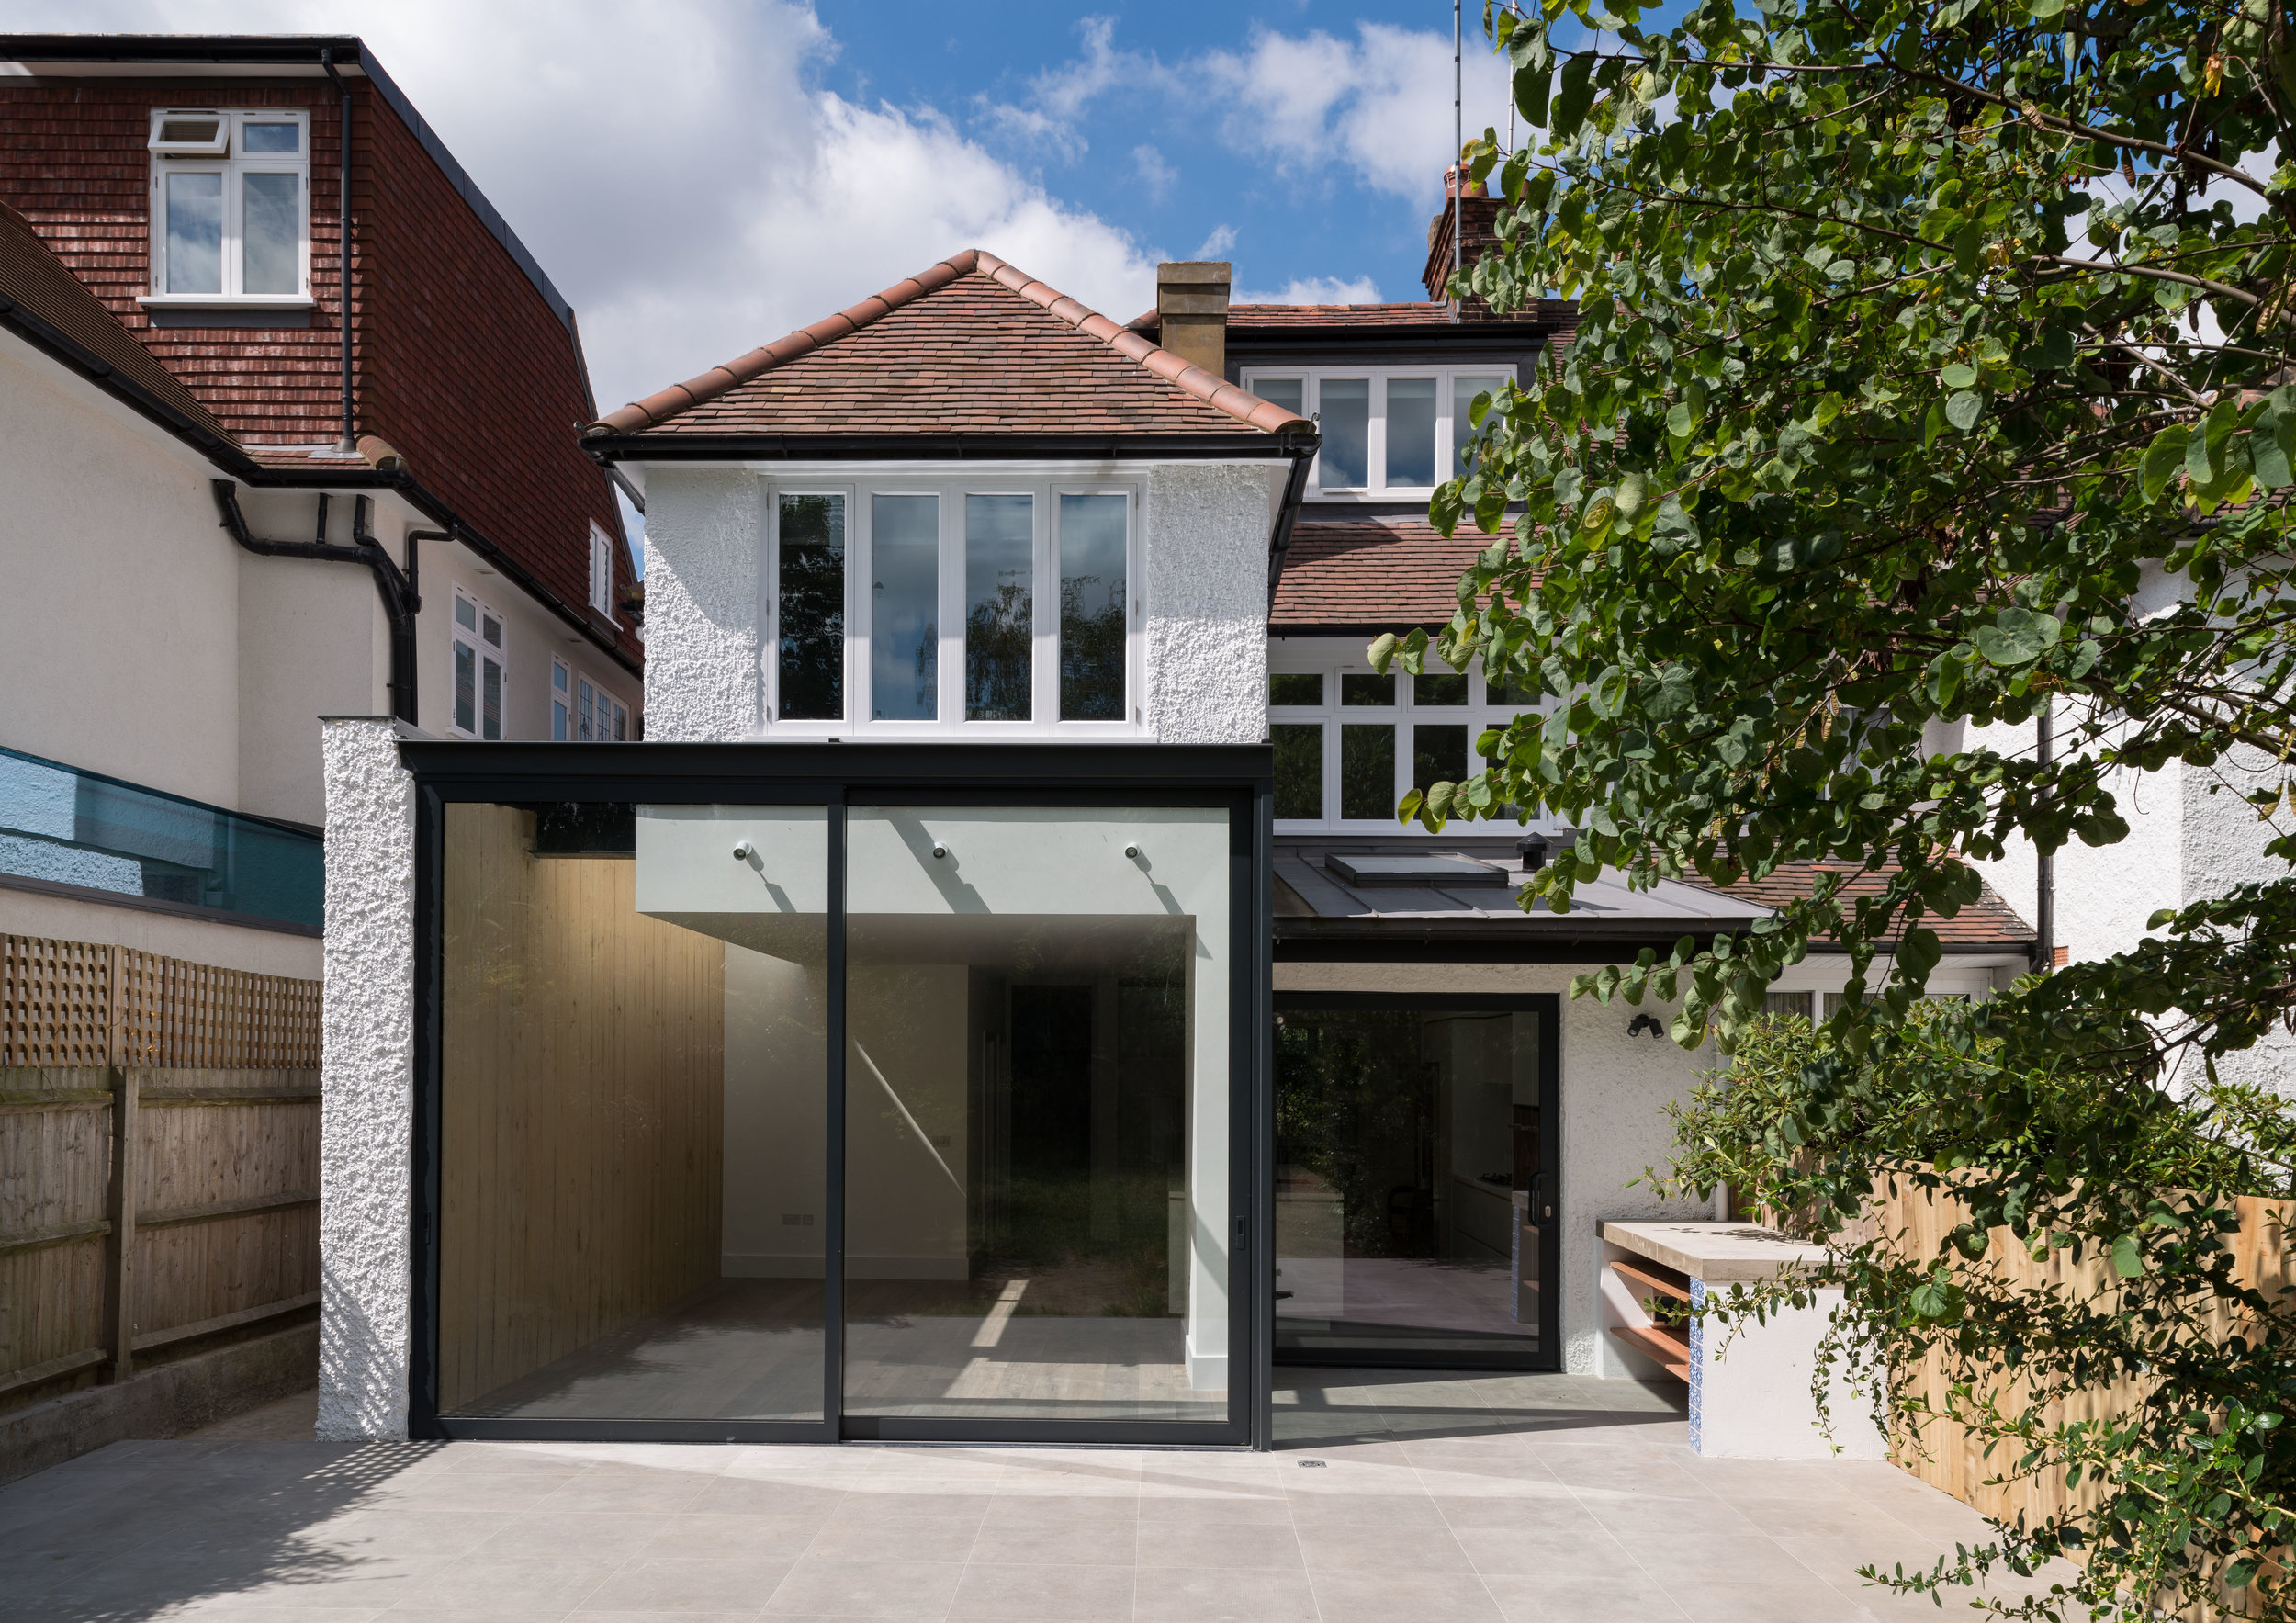 Hodford Road Rear External - MW Architects